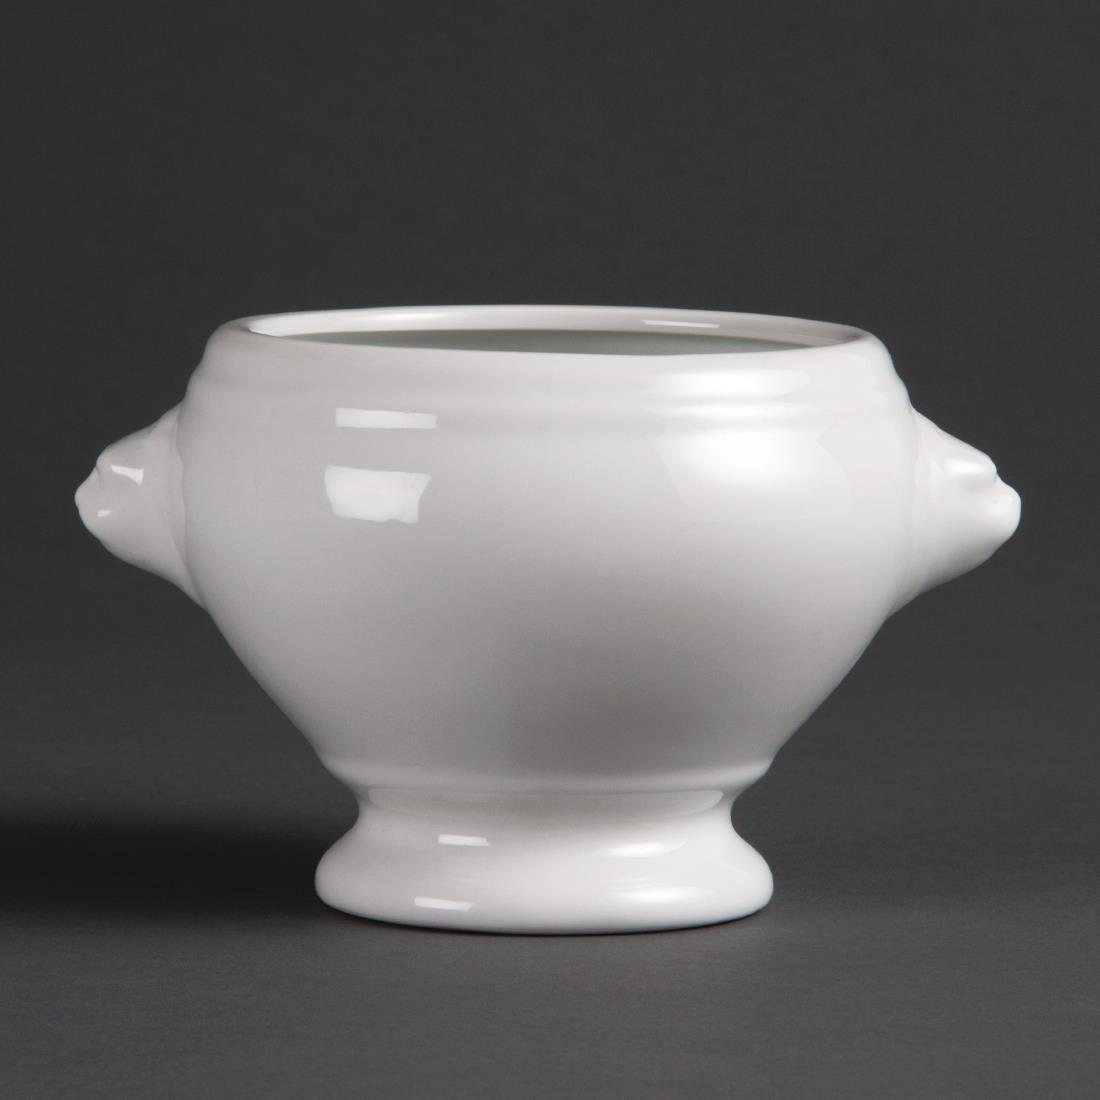 Olympia Whiteware Lion Head Soup Bowls 475ml